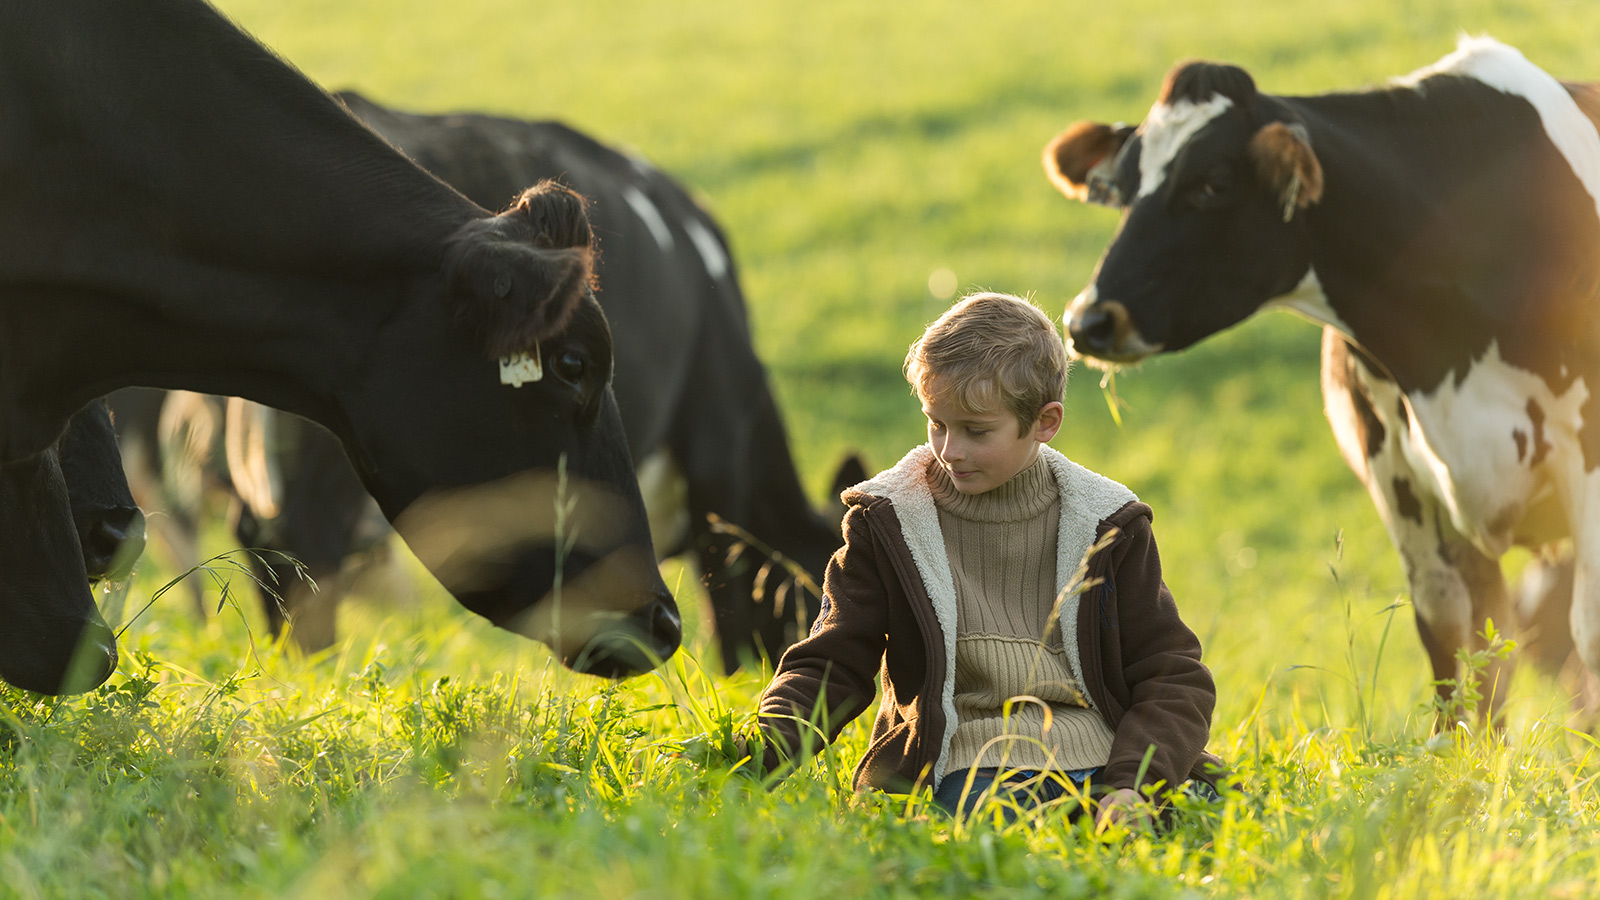 A young boy sits in a green pasture with black and white cows around him.